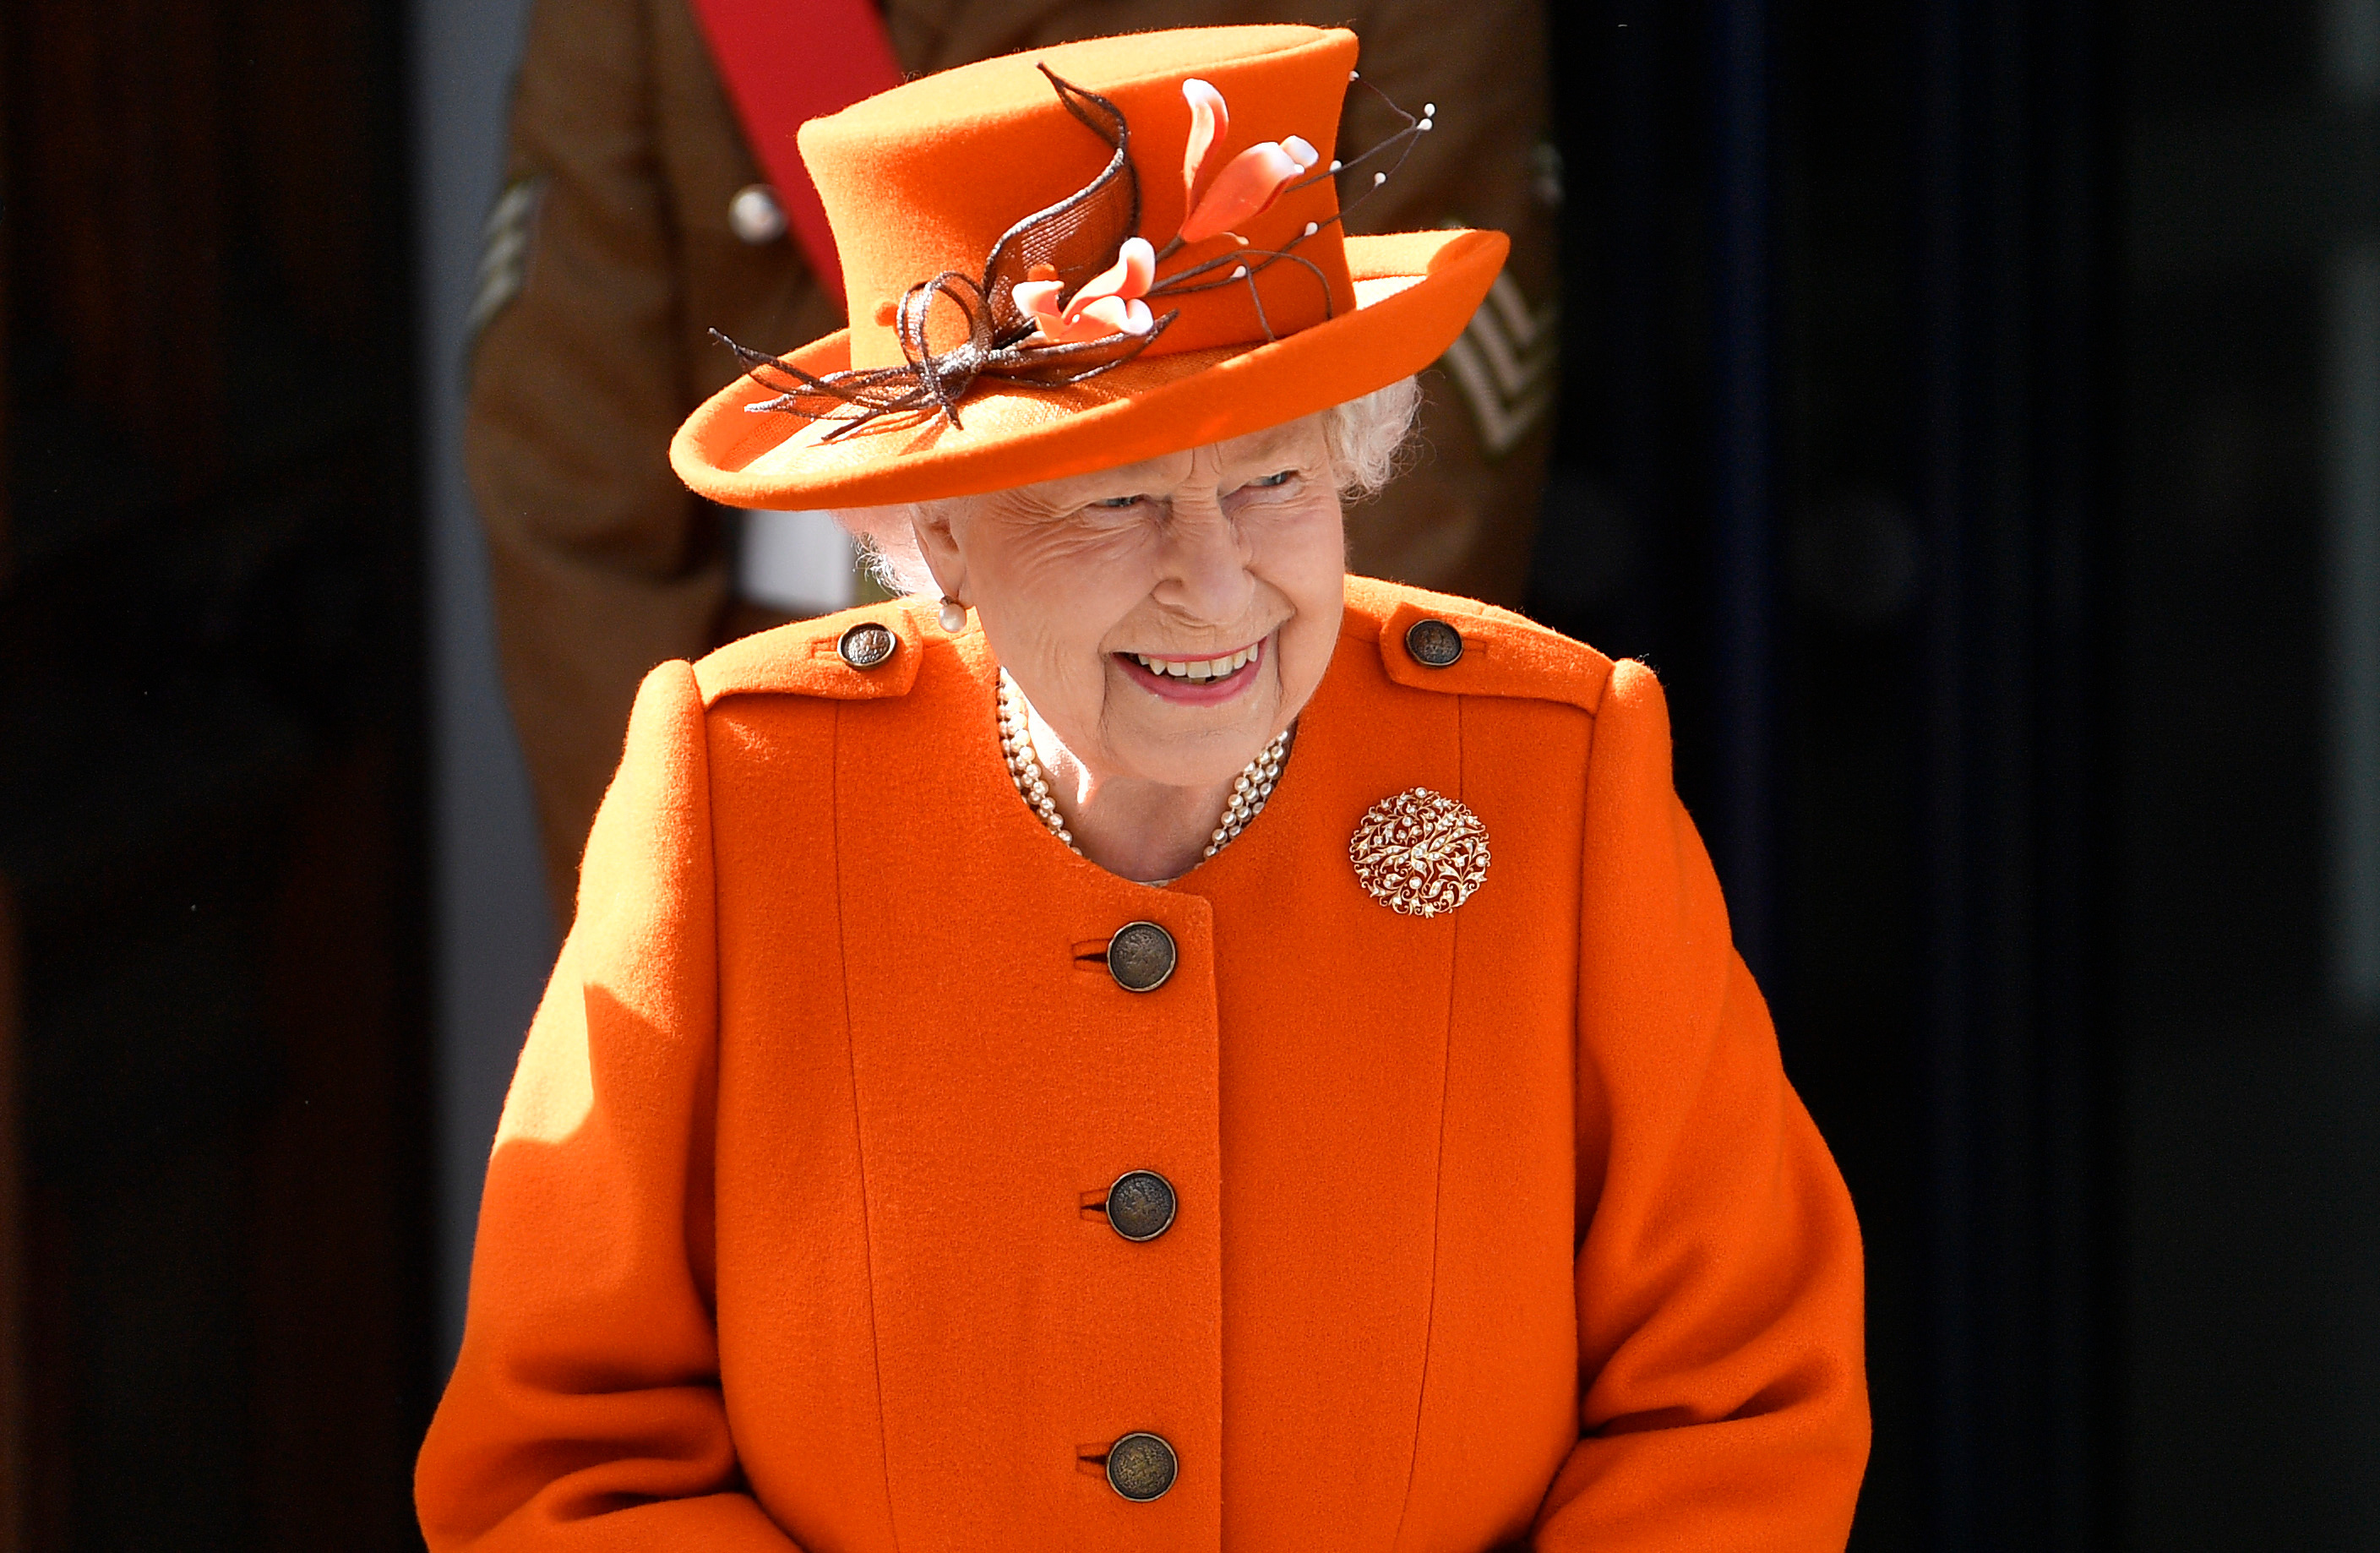 Britain's Queen Elizabeth departs an engagement at the Science Museum in London on March 7.